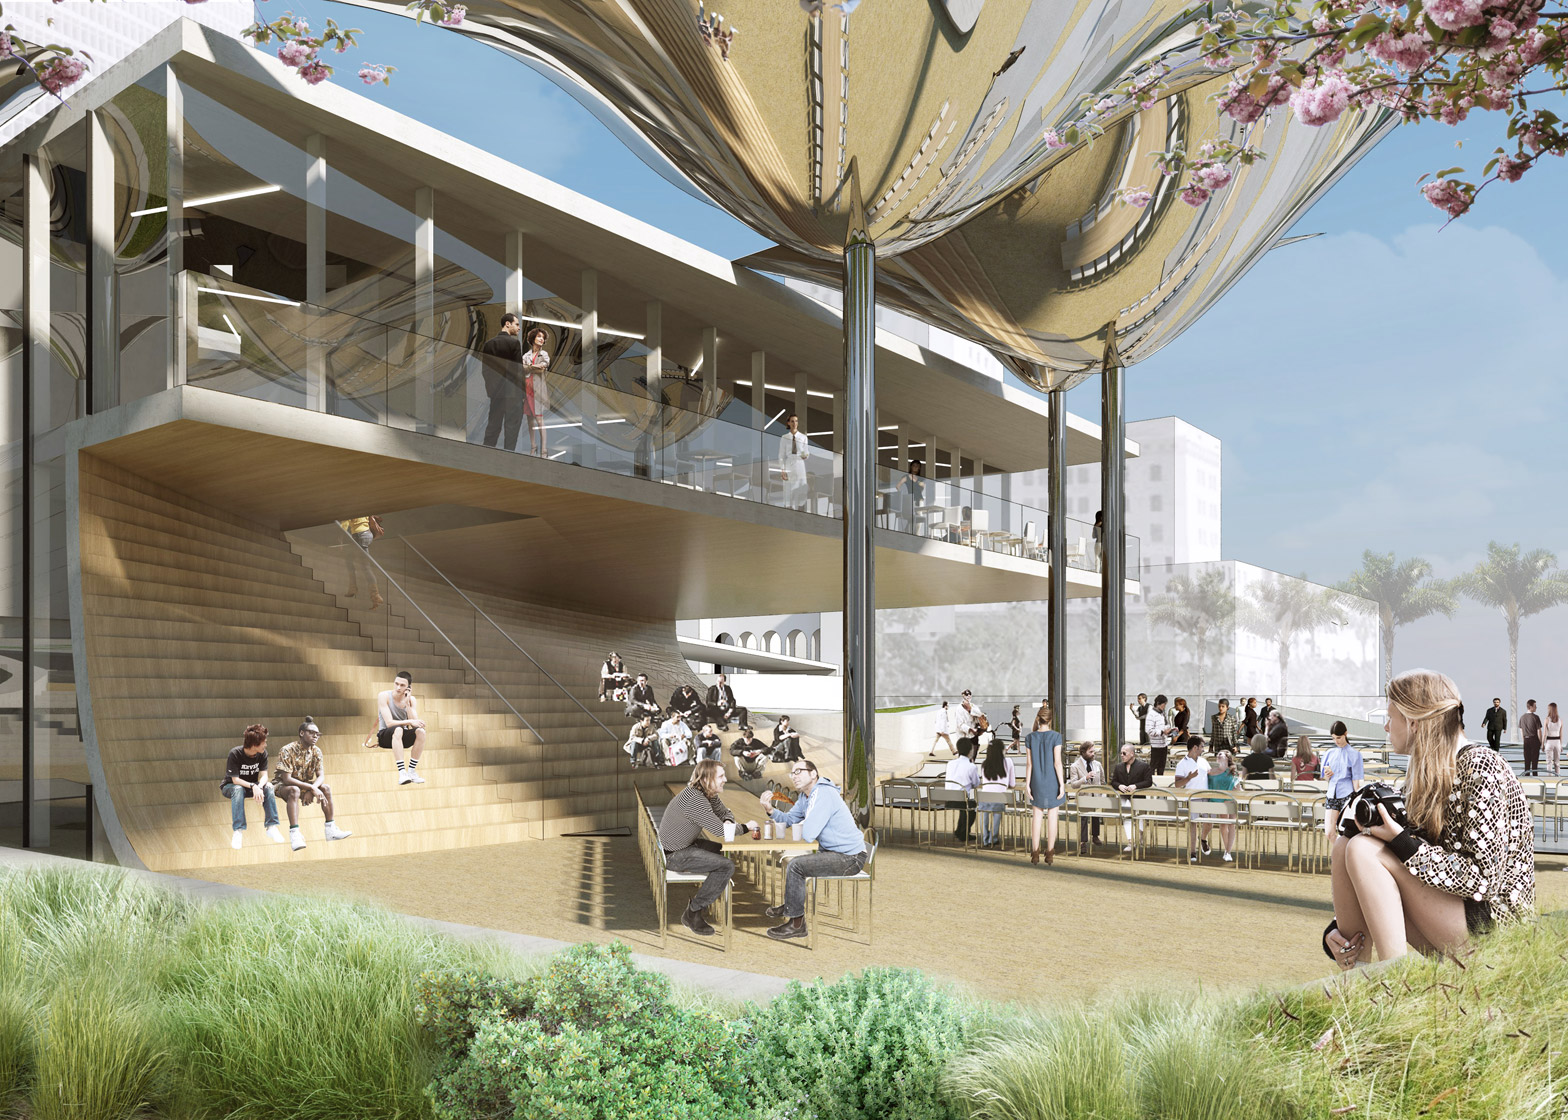 OMA design selected for FAB park in Los Angeles